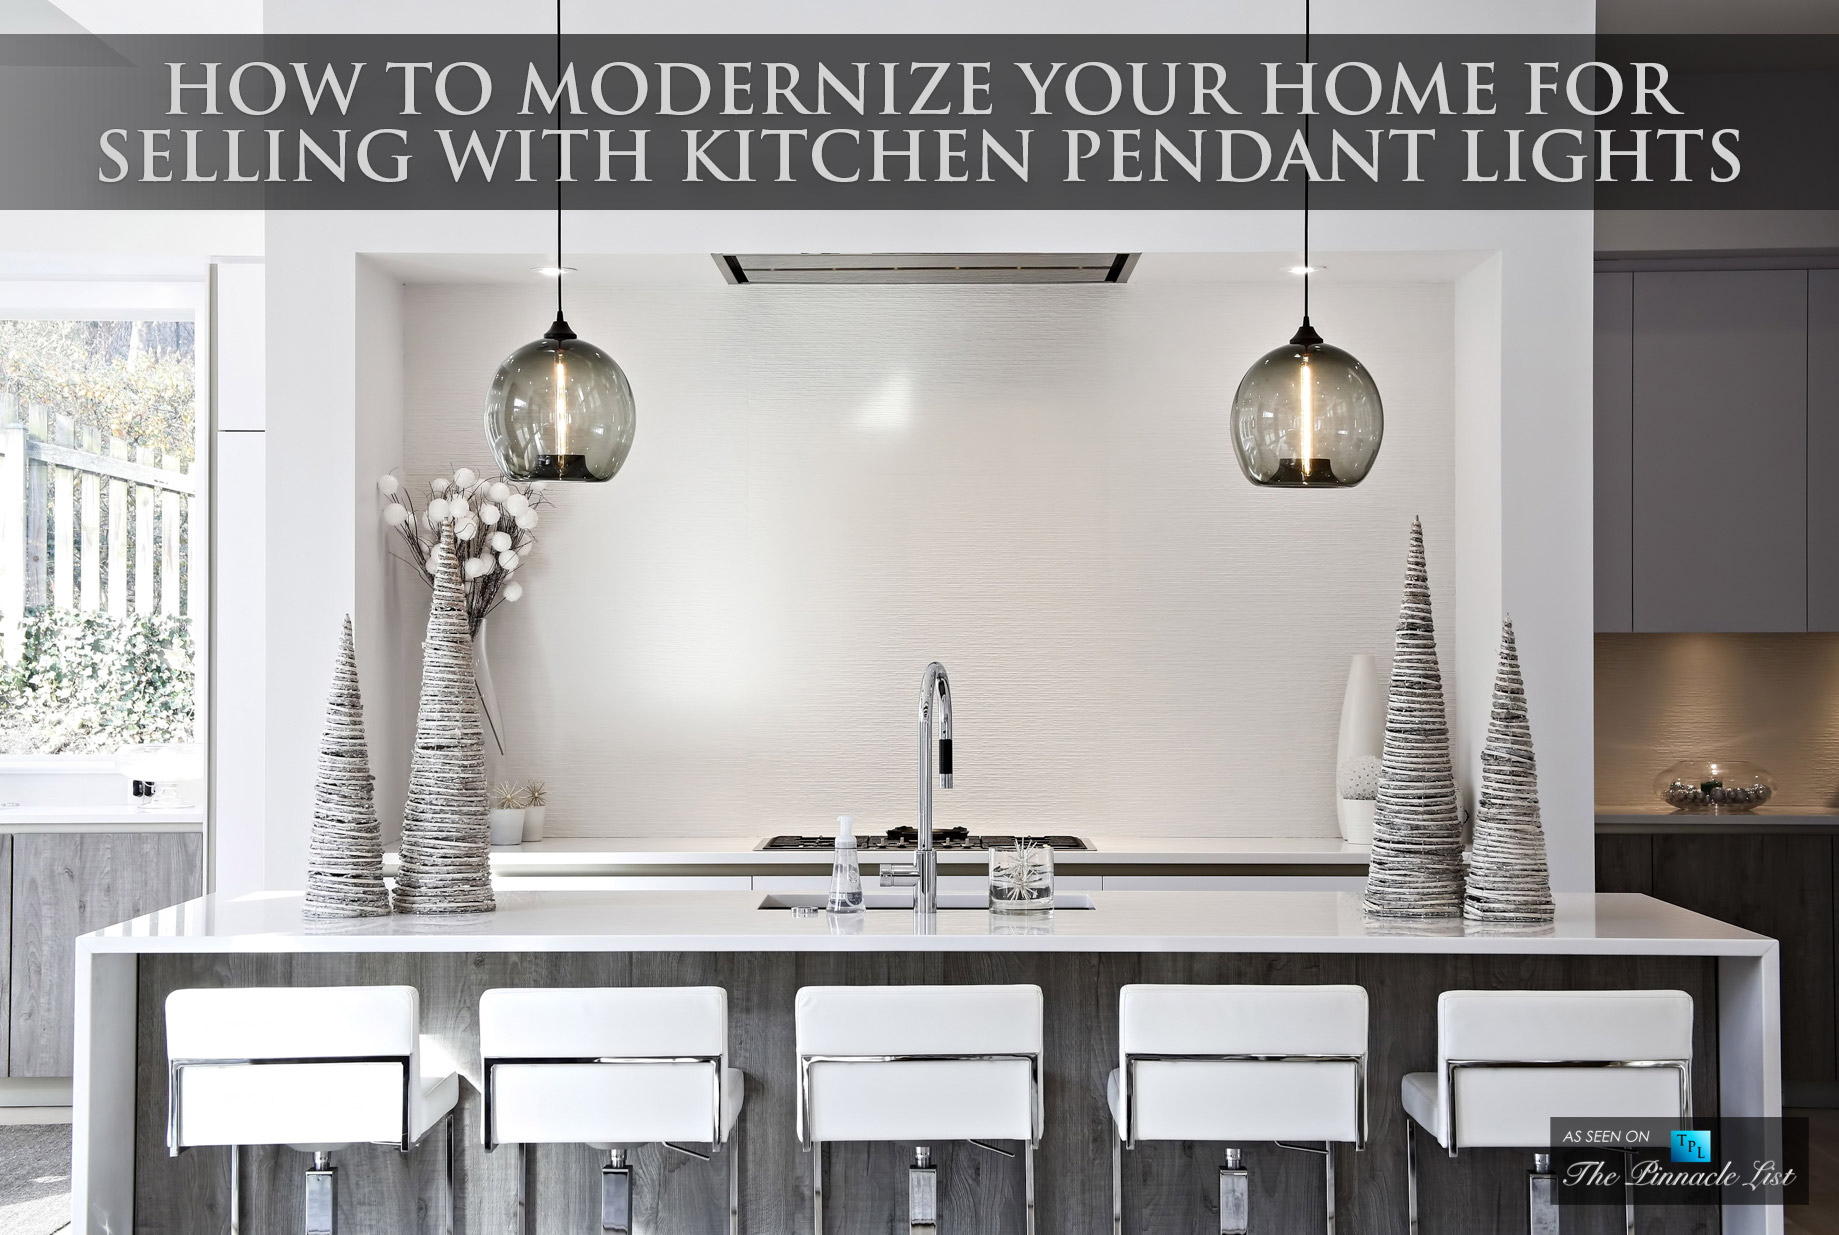 How To Modernize Your Home For Selling with Kitchen Pendant Lights